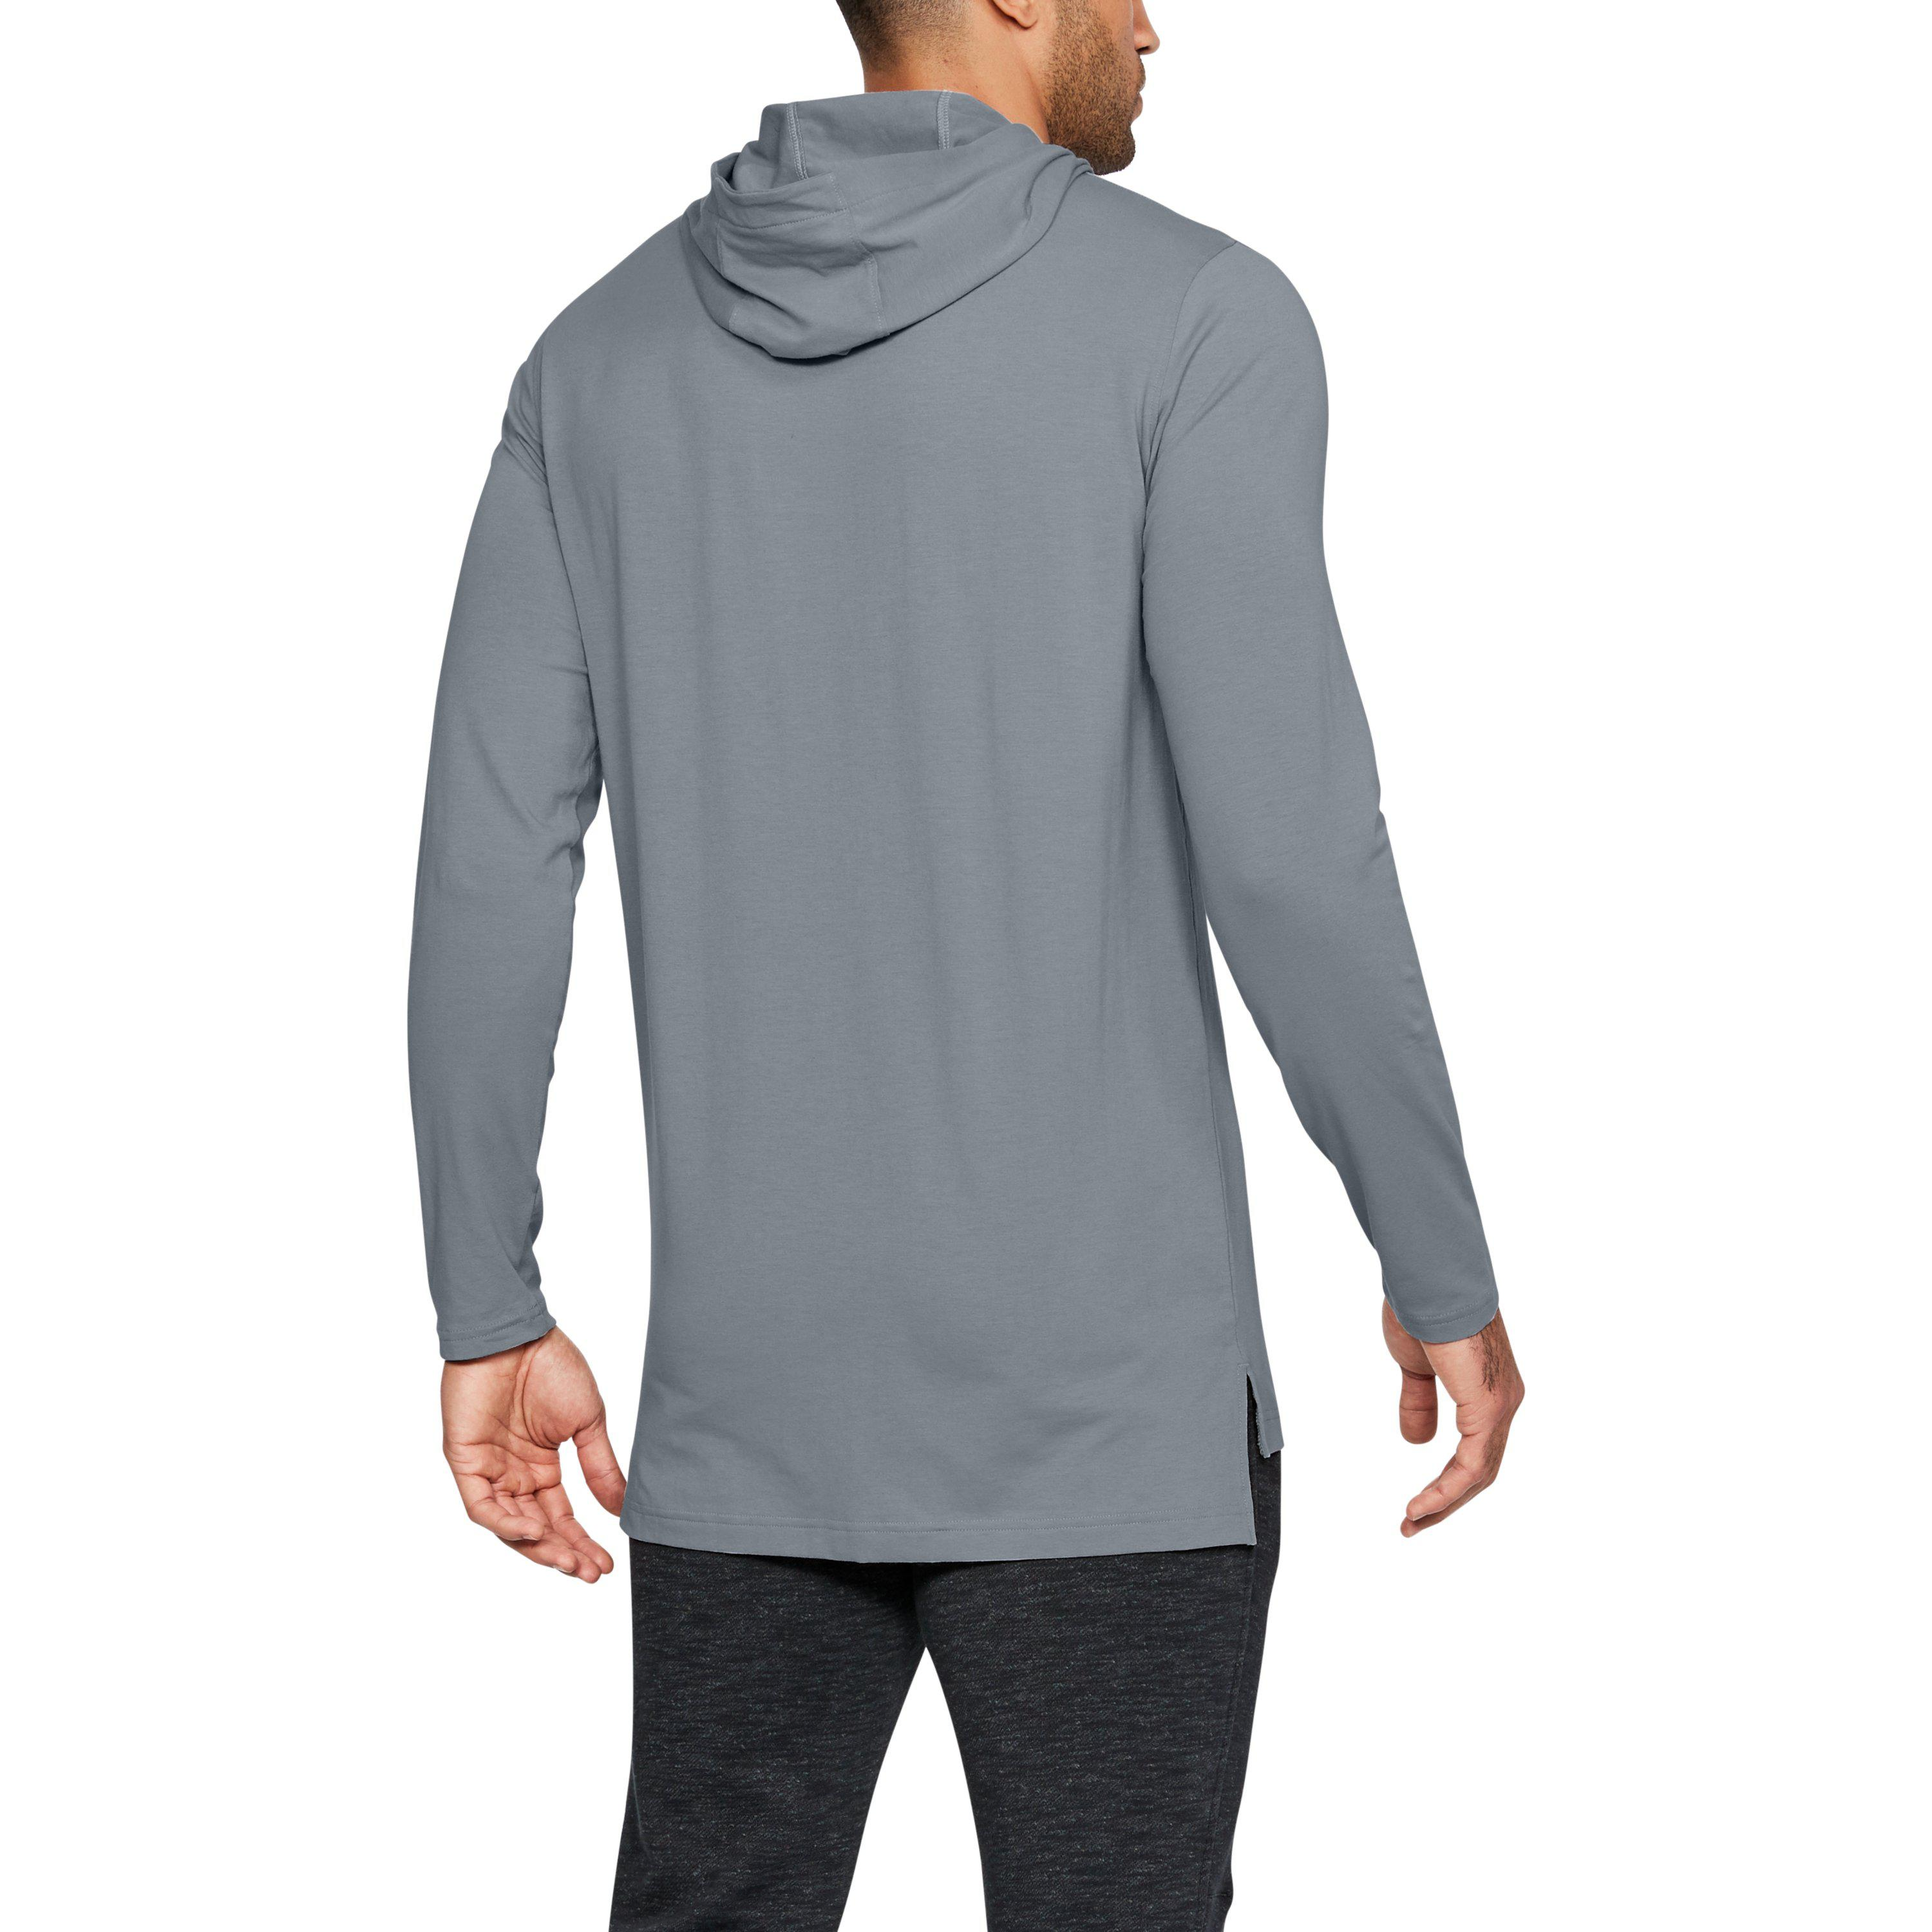 amouflage Sweatershirt Blouse for Men Fitness Workout Sport Hoodies Pullover Slim Fit Hooded Outwear WEI MOLO